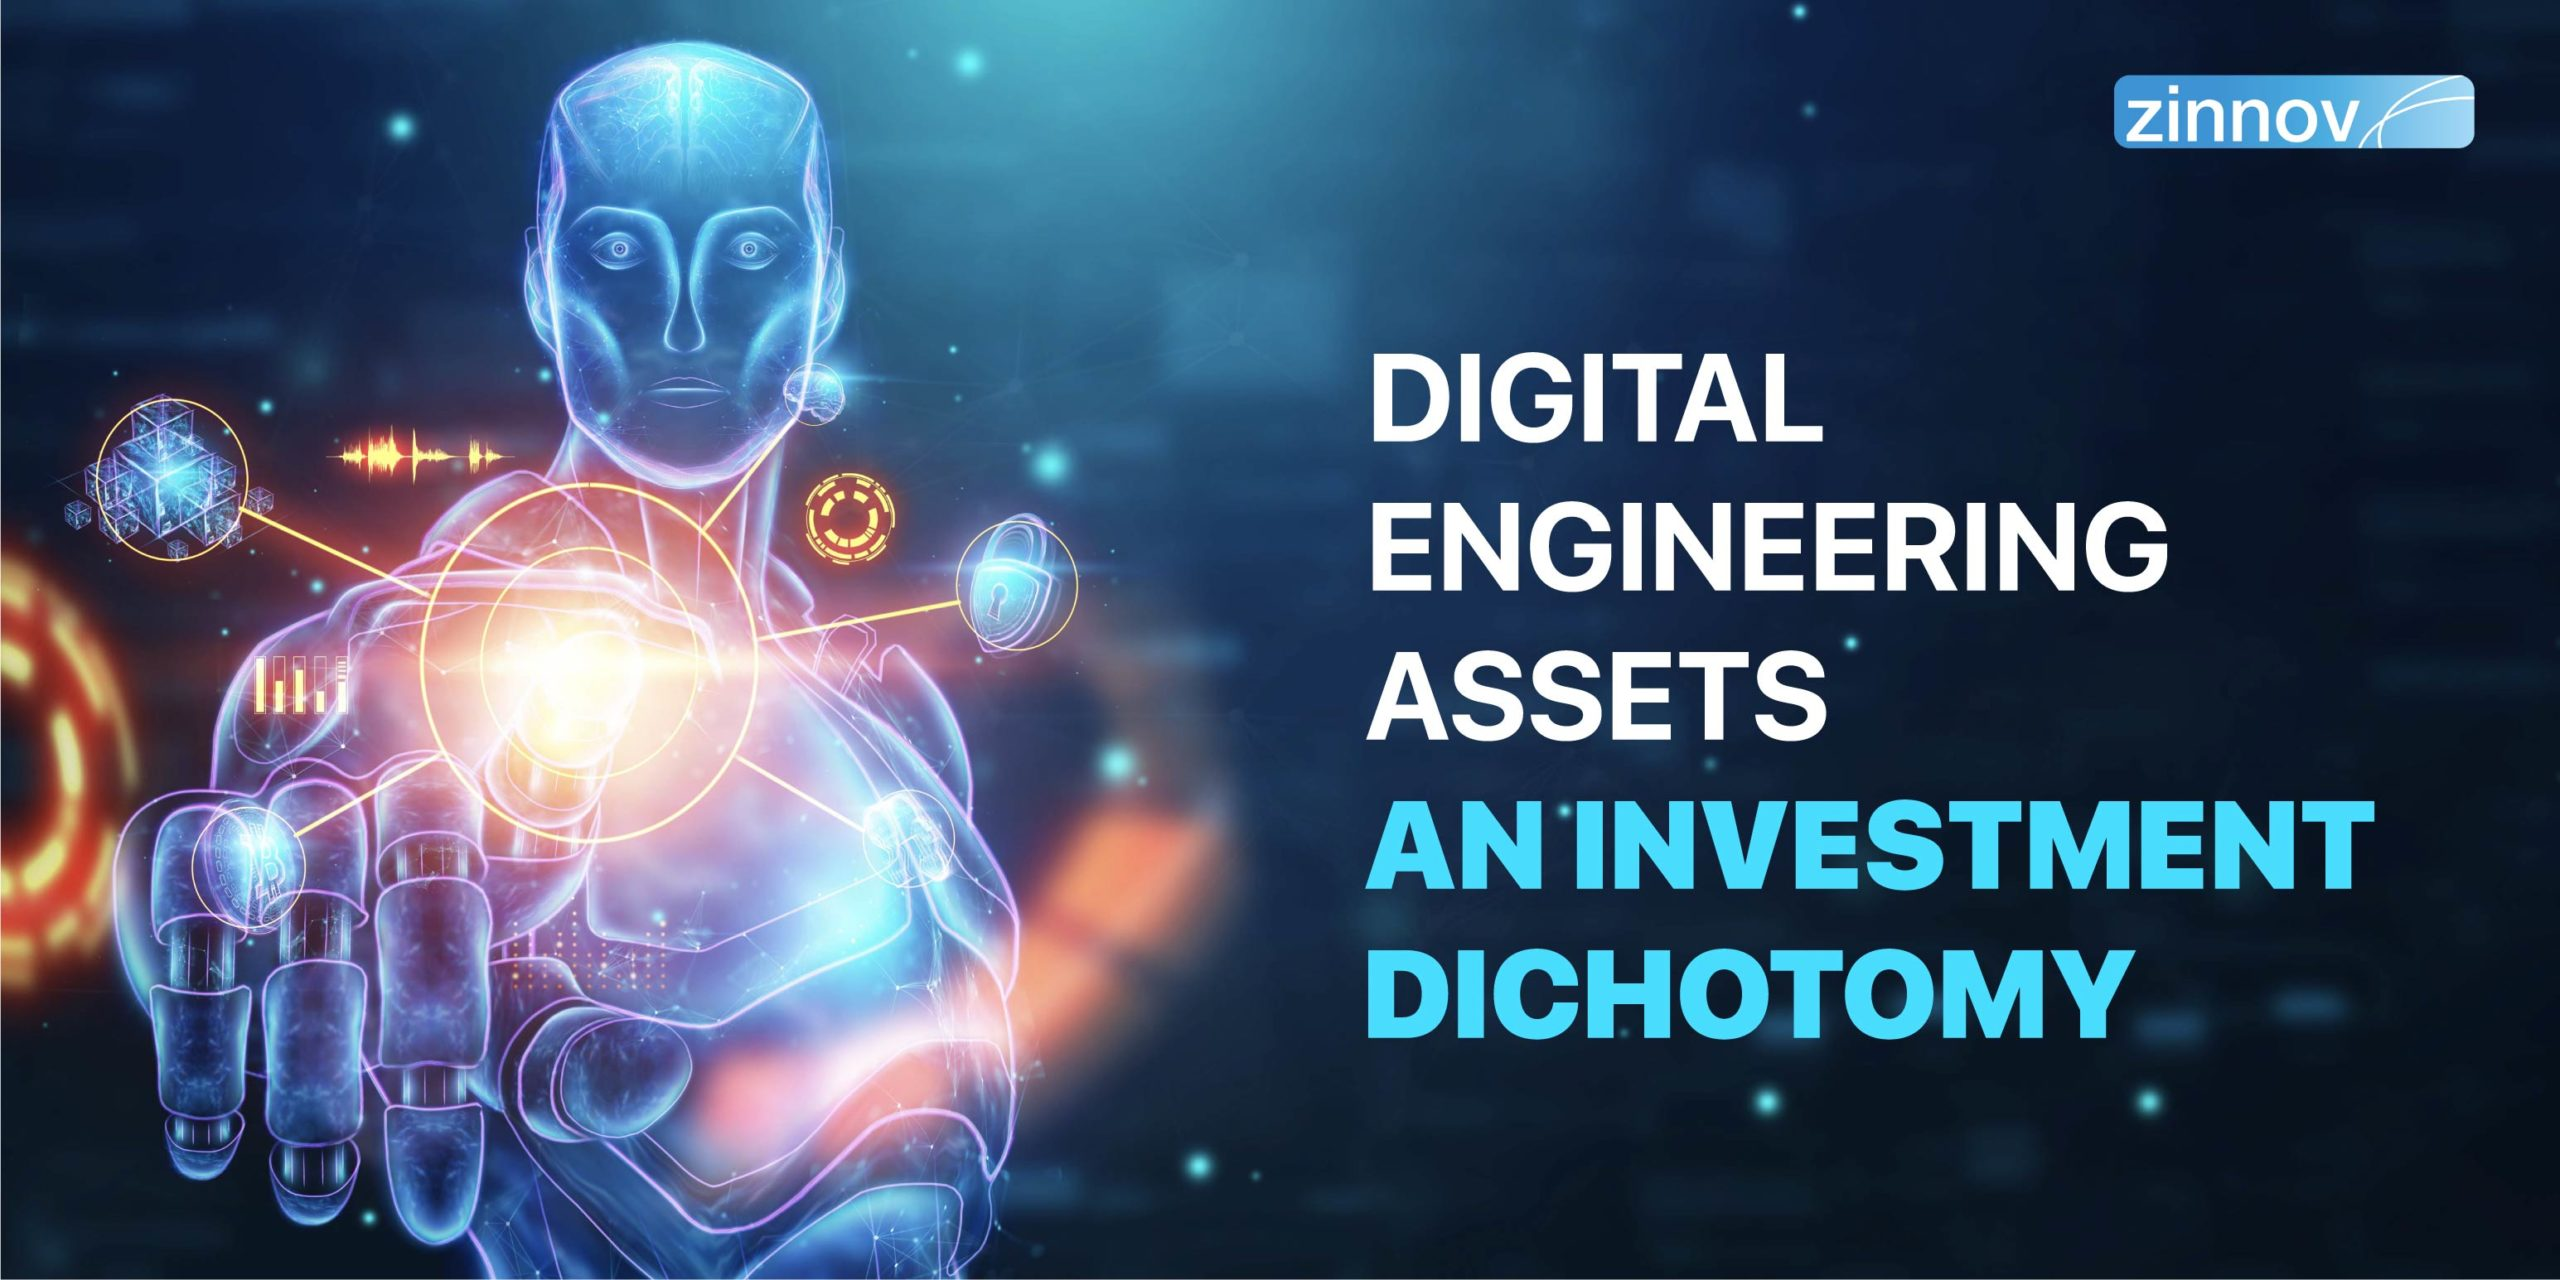 Private Equity Investments in Digital Engineering